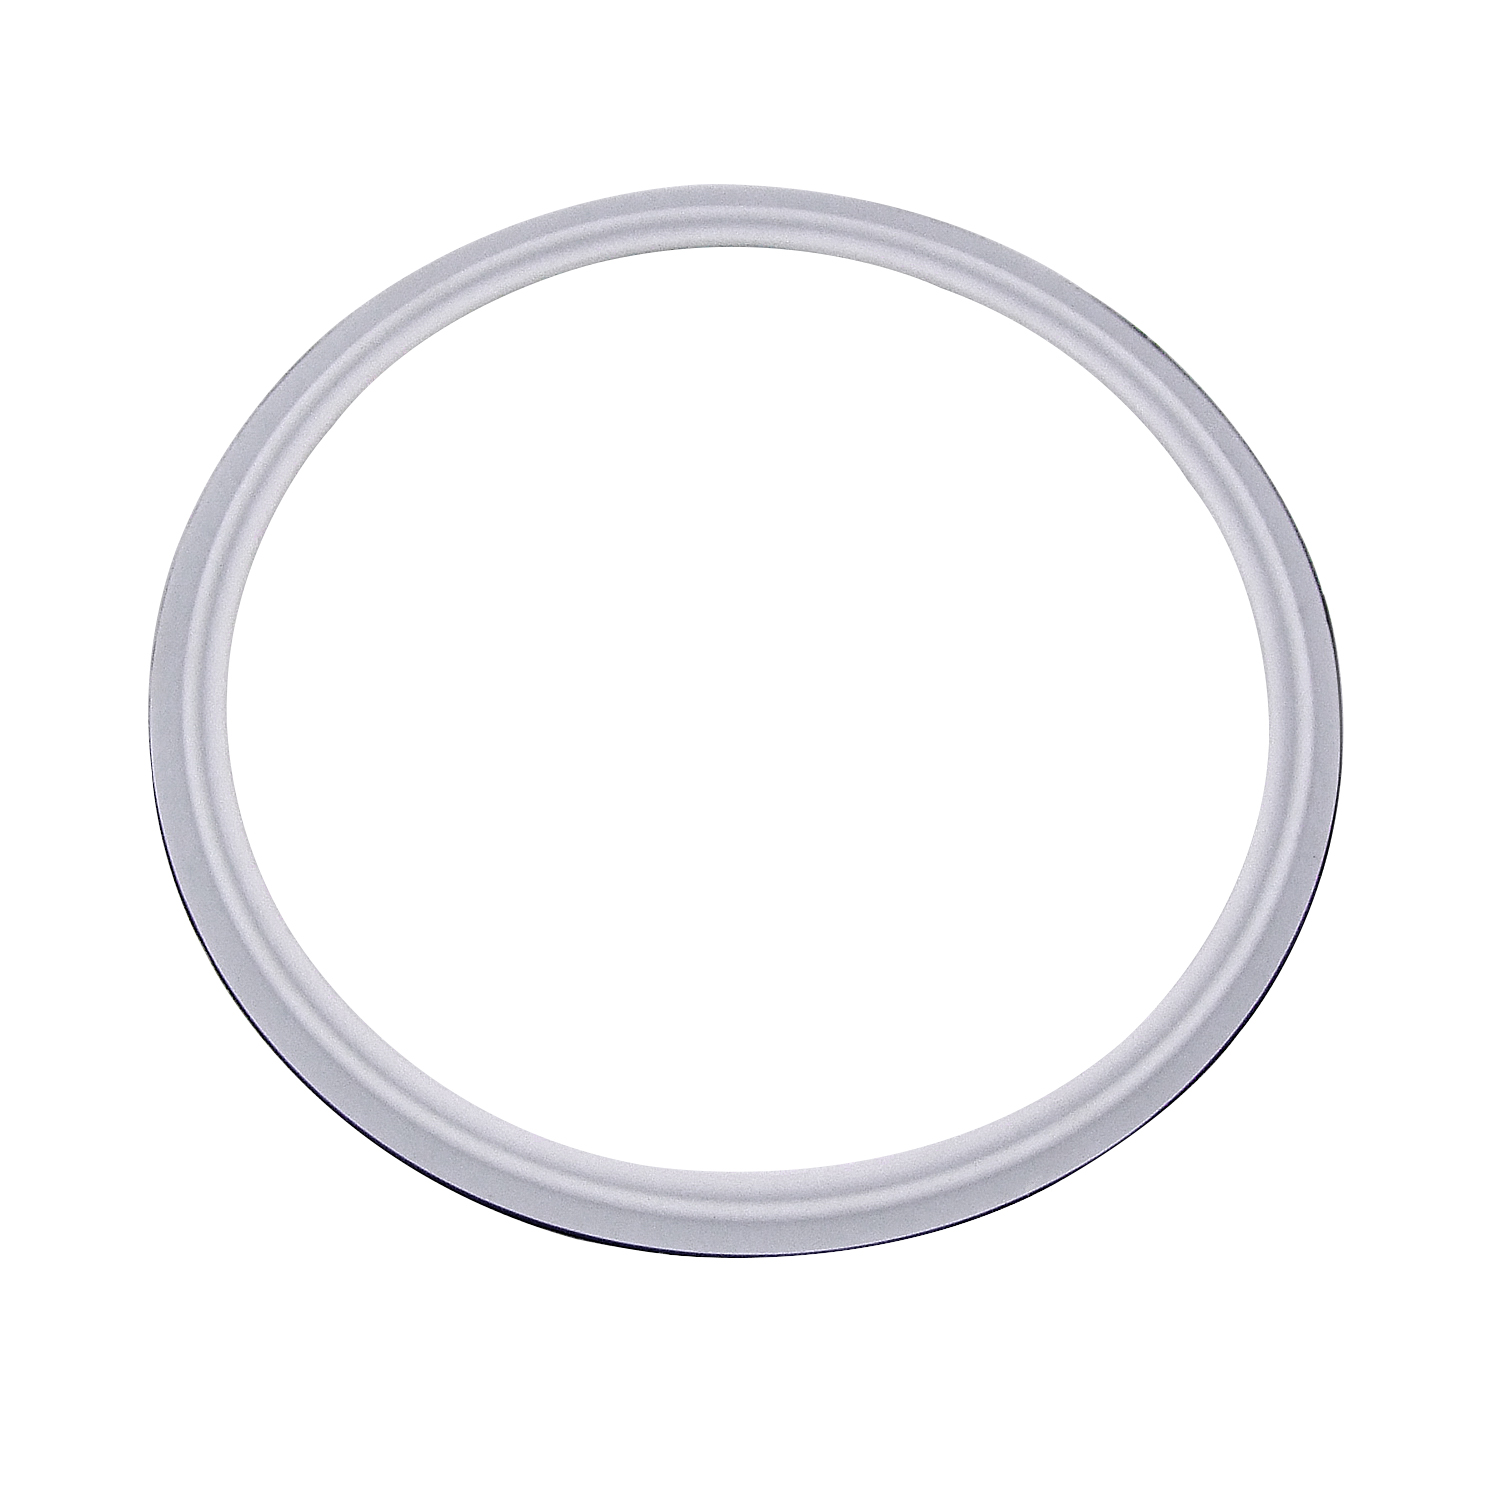 HFS R 1.5 VITON with PTFE Coved Gasket Fits Sanitary Tri Clamp Type Ferrule